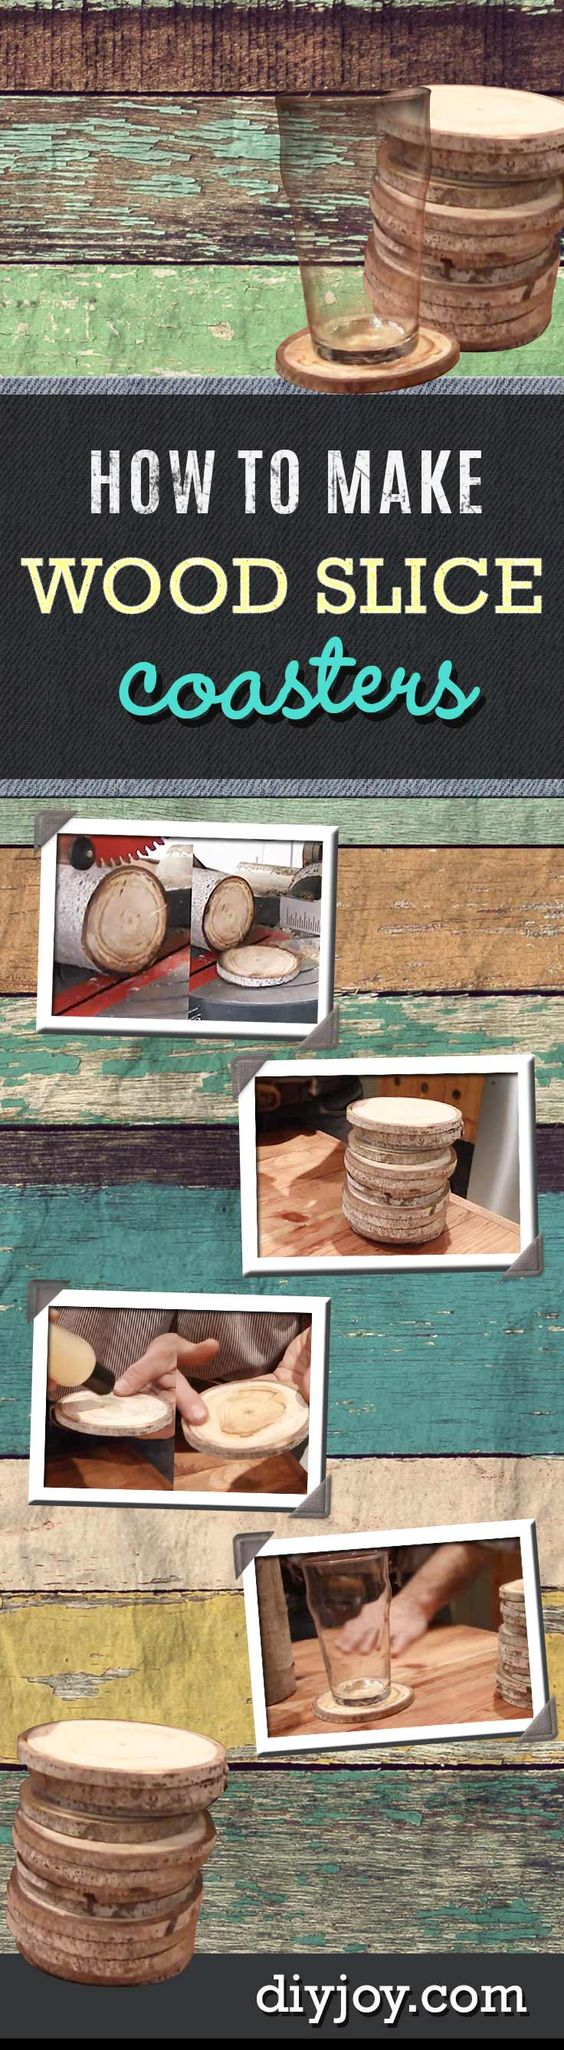 DIY Coasters from Wood Slices Wood Slices, Woods and Diy Wood